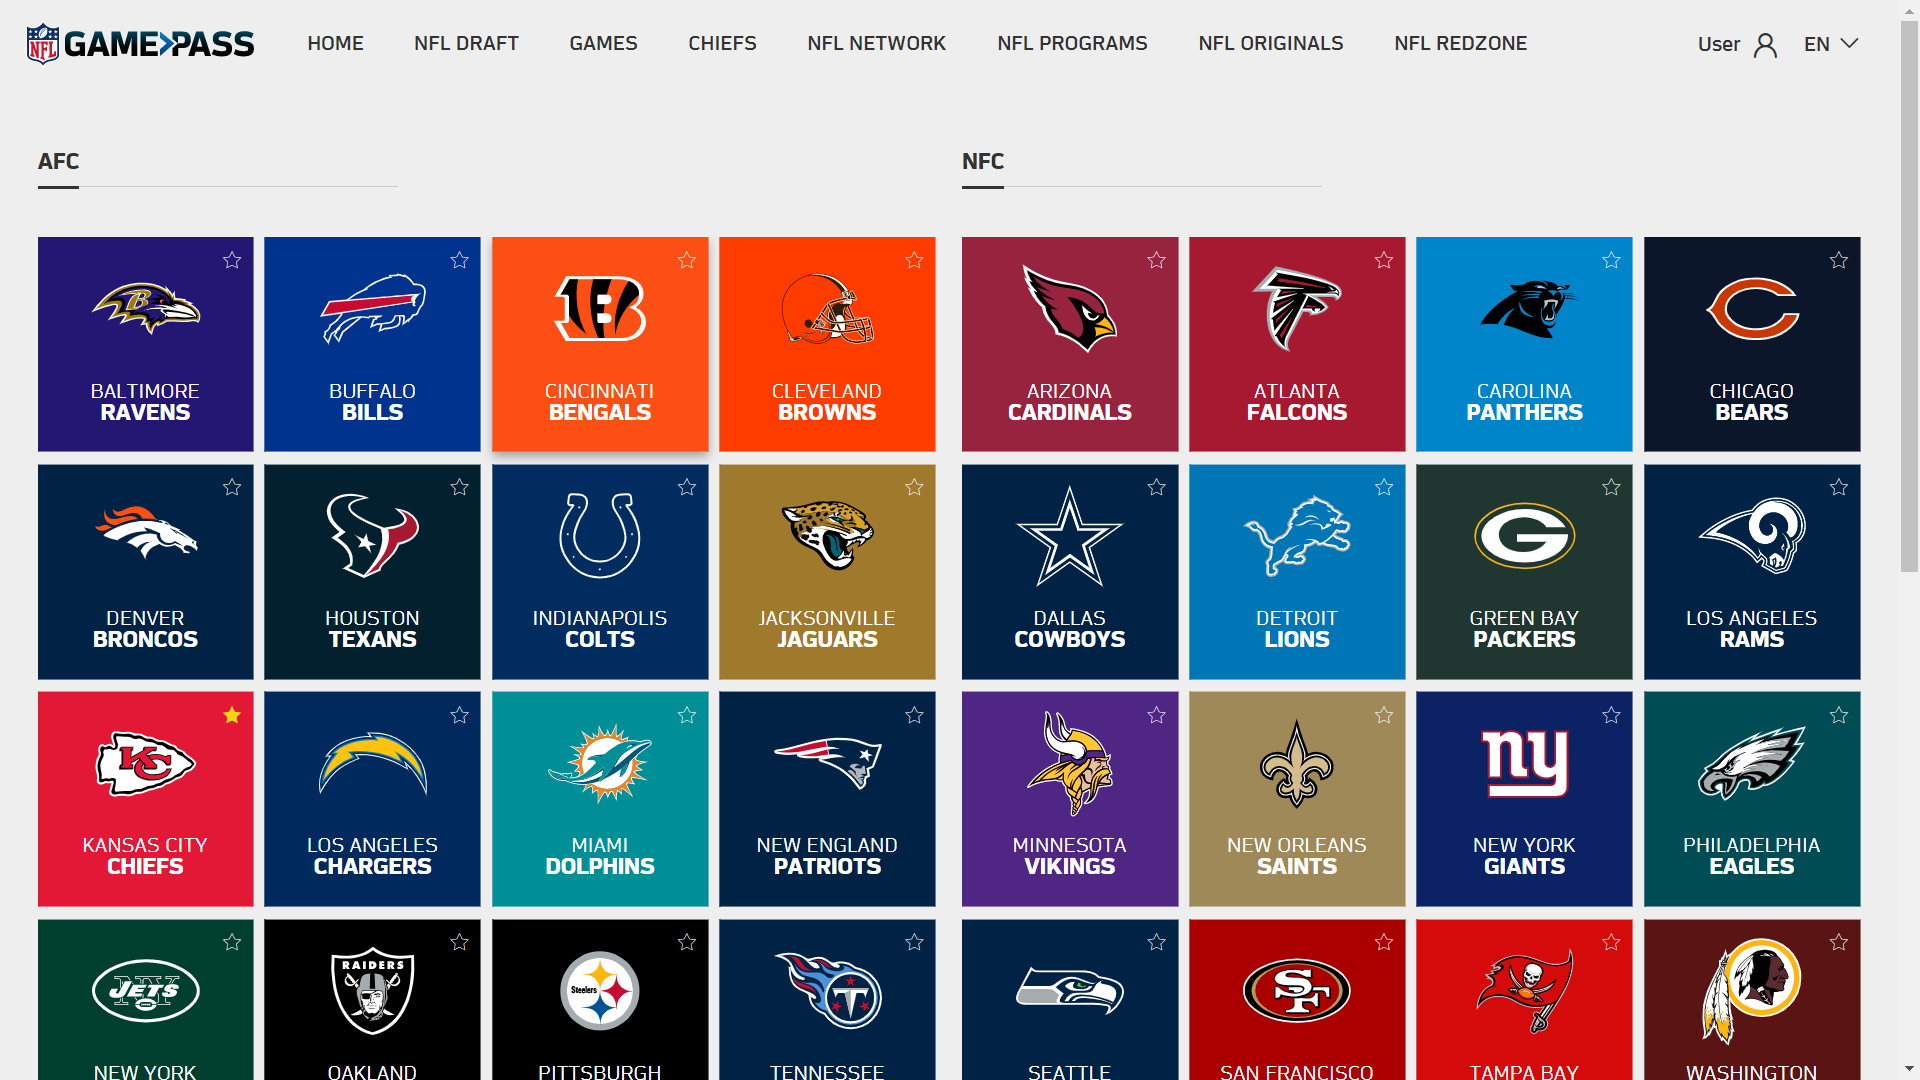 NFLGP-TEAMS.png